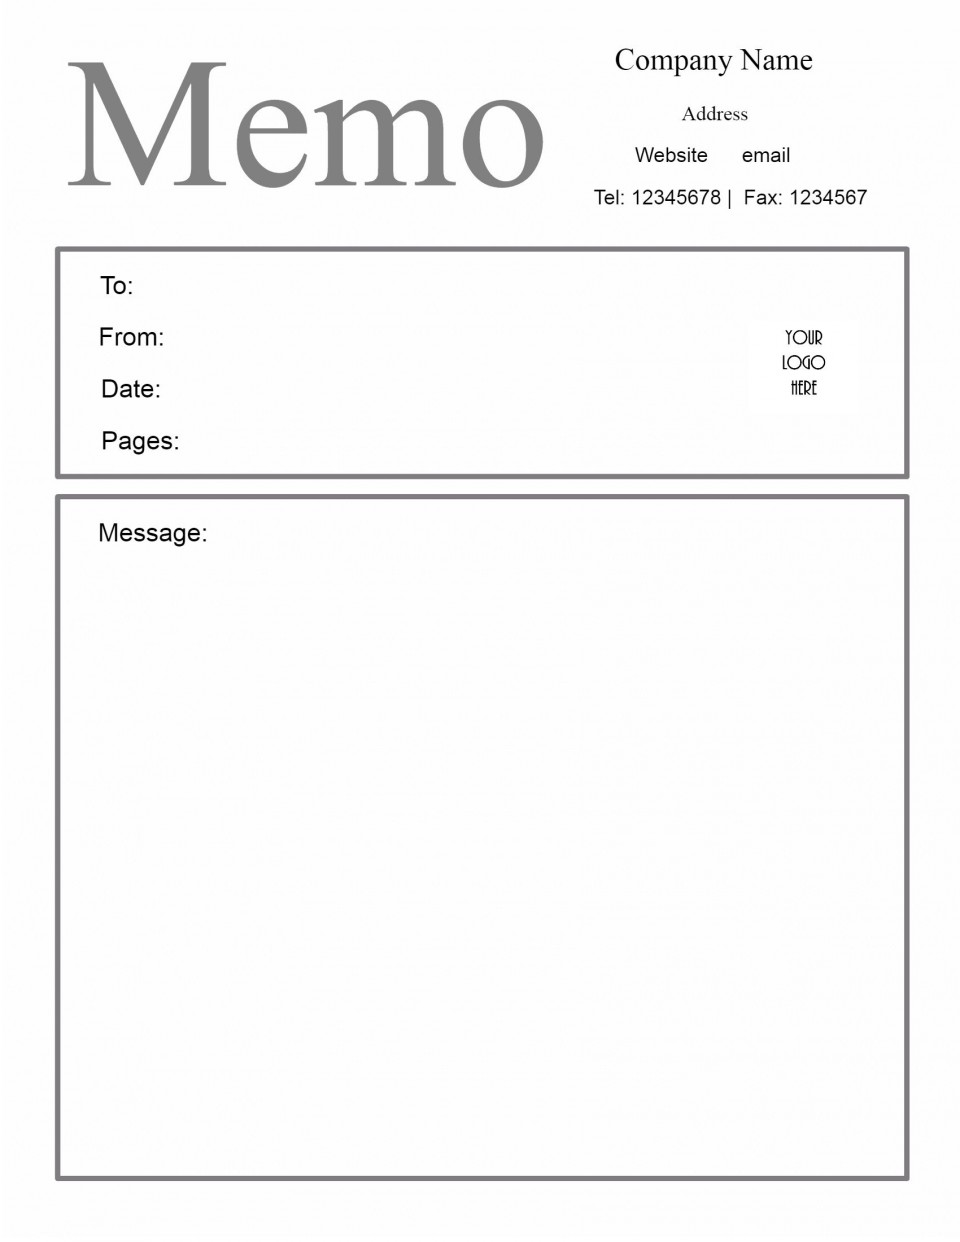 009 Outstanding Microsoft Word Memo Template High Definition  Professional 2010 Free Legal960